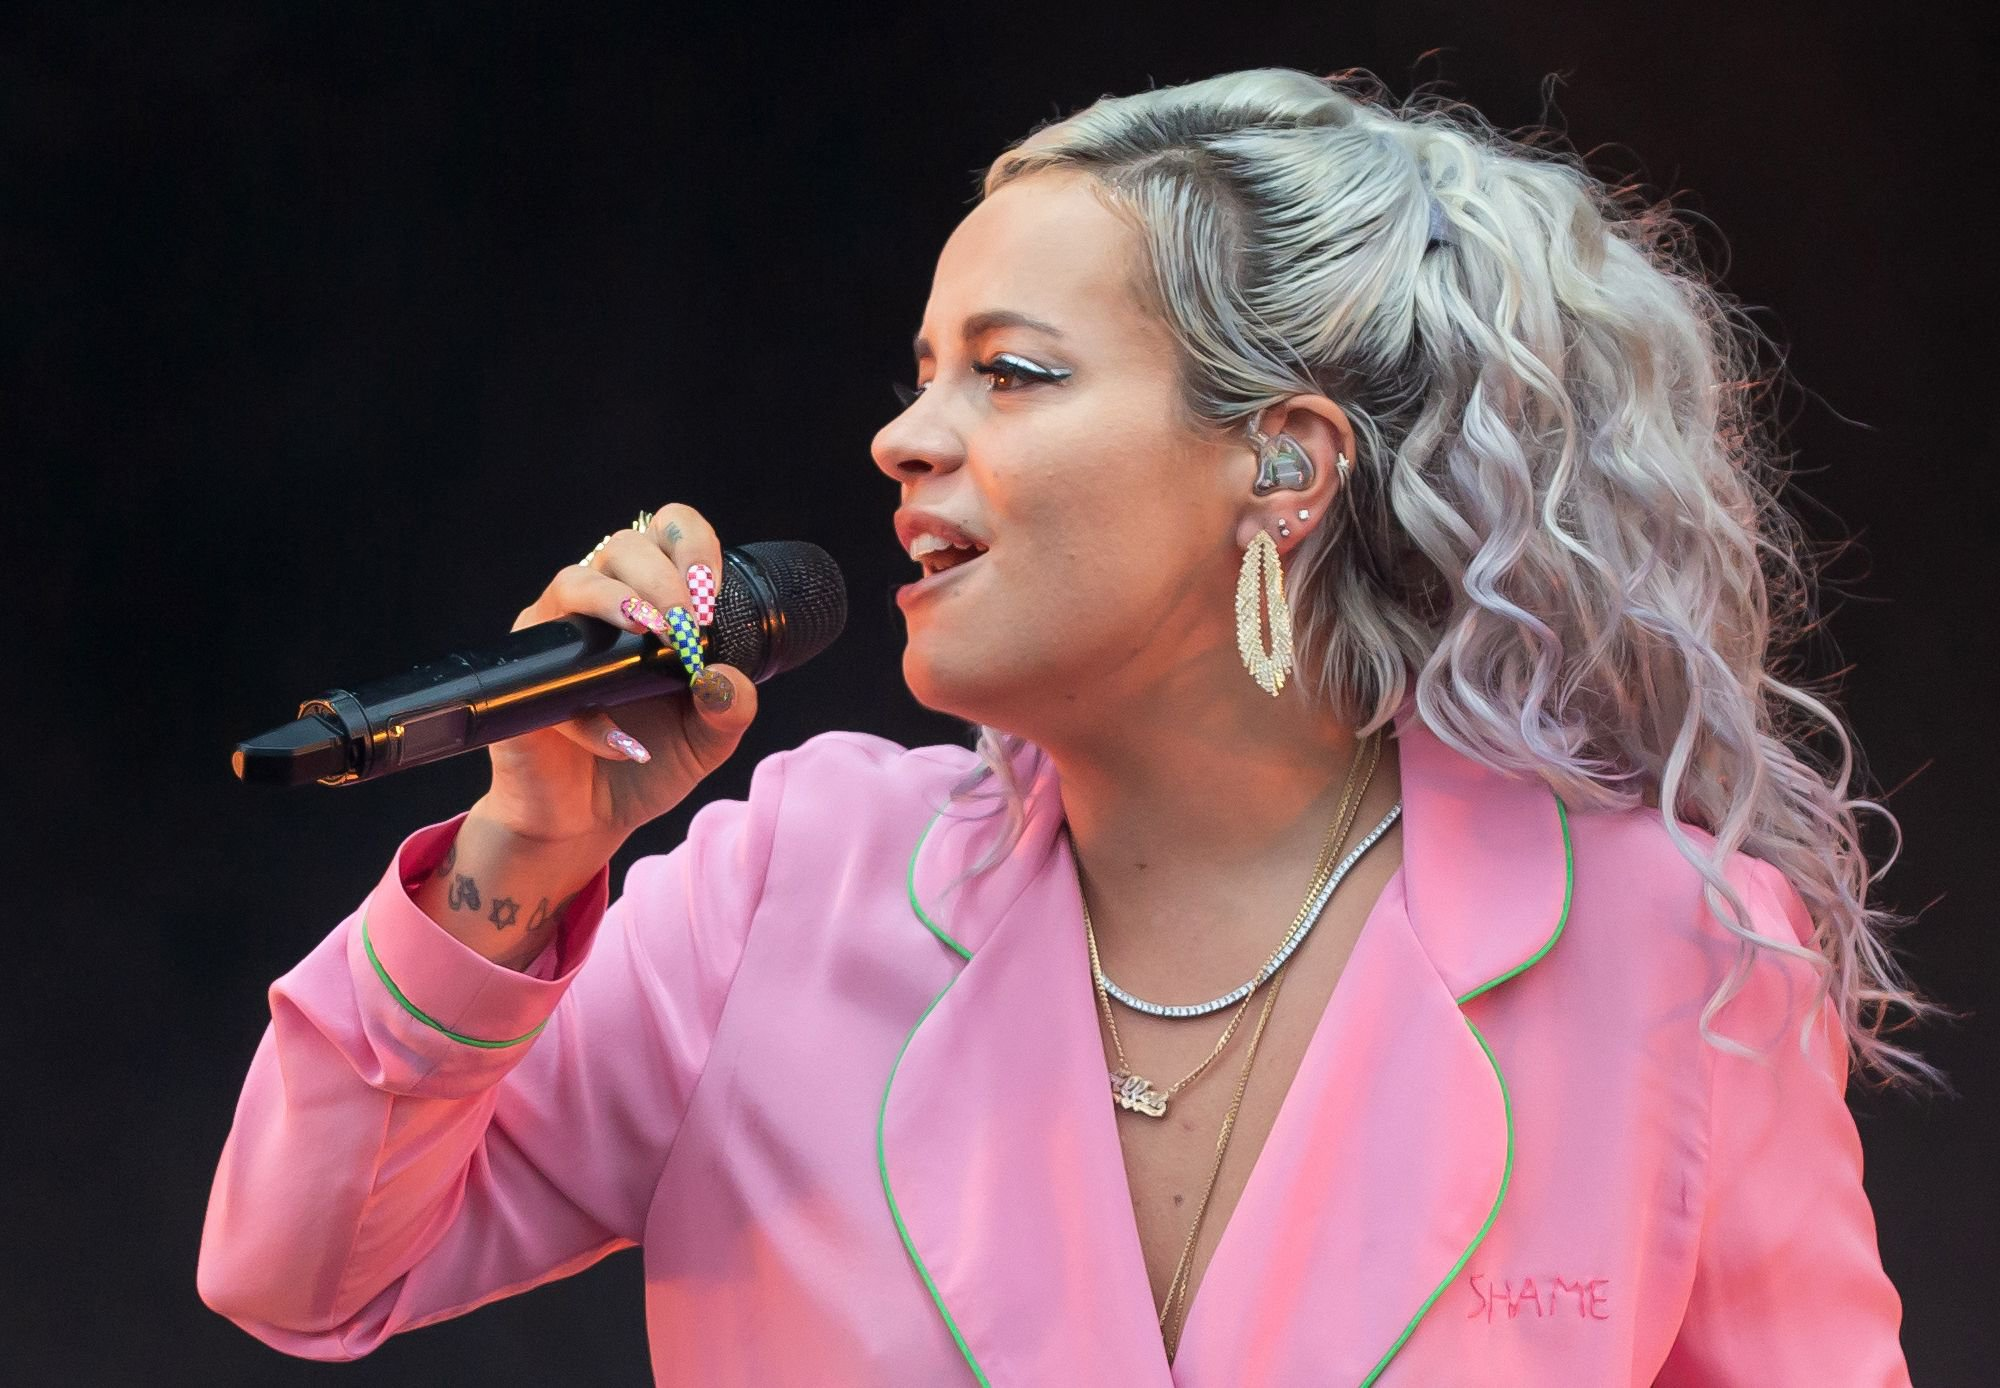 English singer-songwriter Lily Allen performs during weekend two of the ACL Music Festival at Zilker Park in Austin on October 12, 2018. (Photo by SUZANNE CORDEIRO / AFP)SUZANNE CORDEIRO/AFP/Getty Images